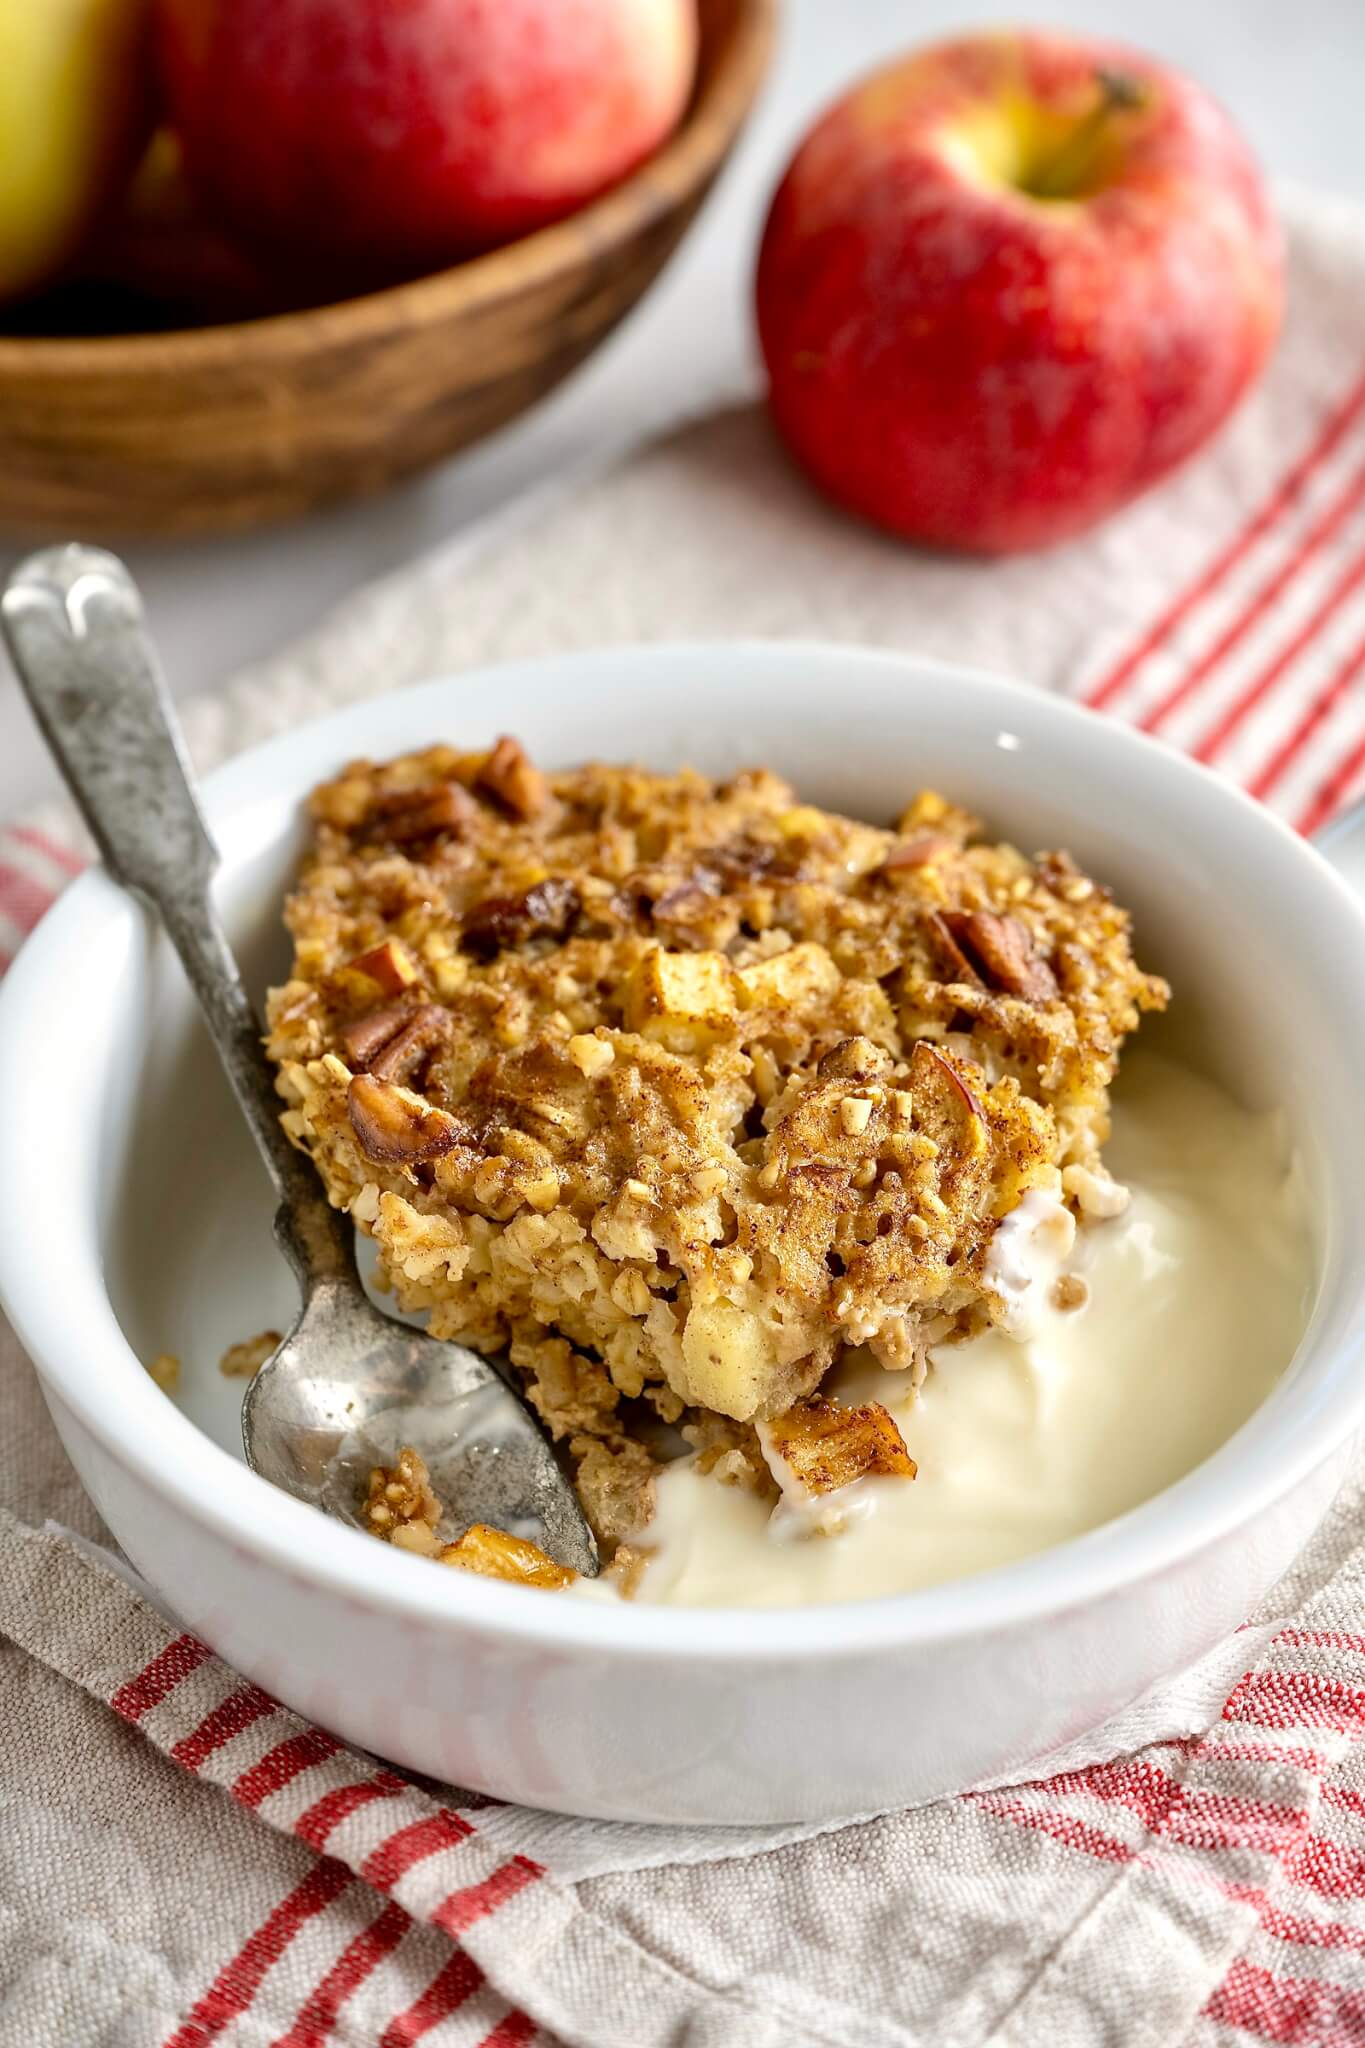 Steel cuts oats add chewy, nutty deliciousness to the classic baked oatmeal in this healthy, customizable, make-head breakfast!